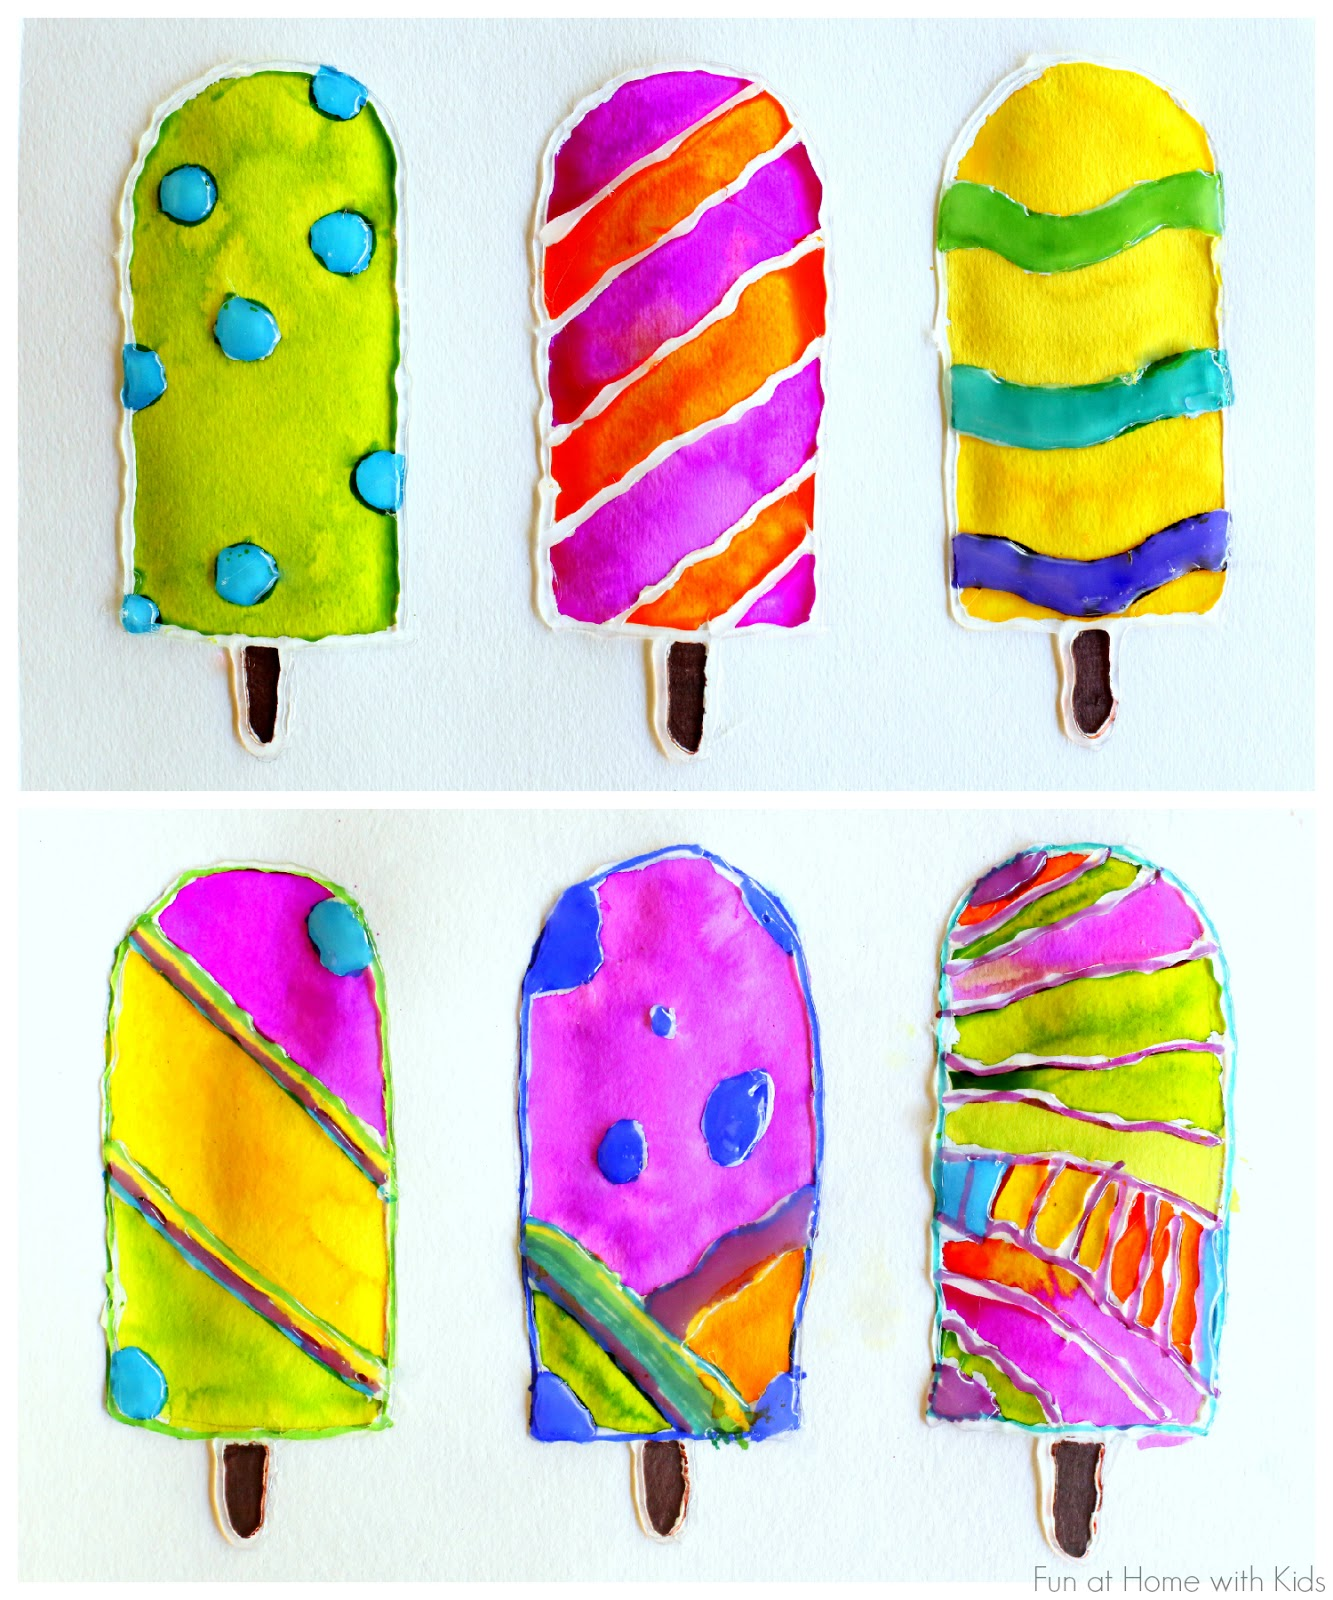 Popsicle Resist Art With Free Template From Fun At Home Kids